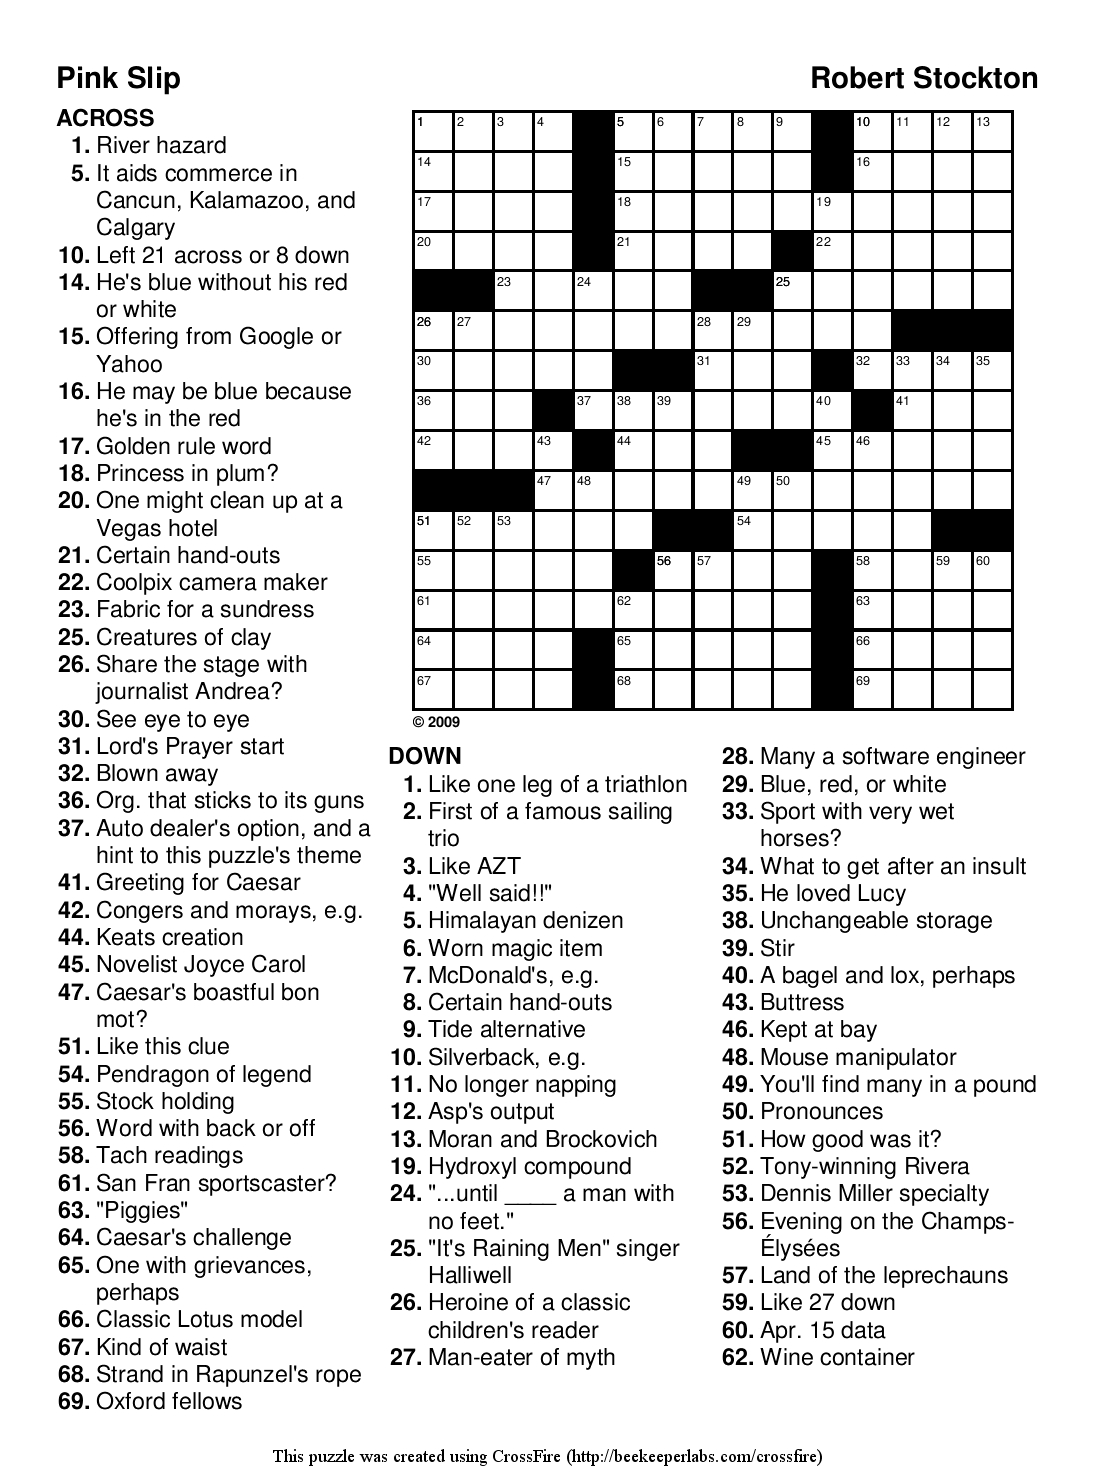 Printable Puzzles For Adults | Easy Word Puzzles Printable Festivals - Printable Puzzles For Adults